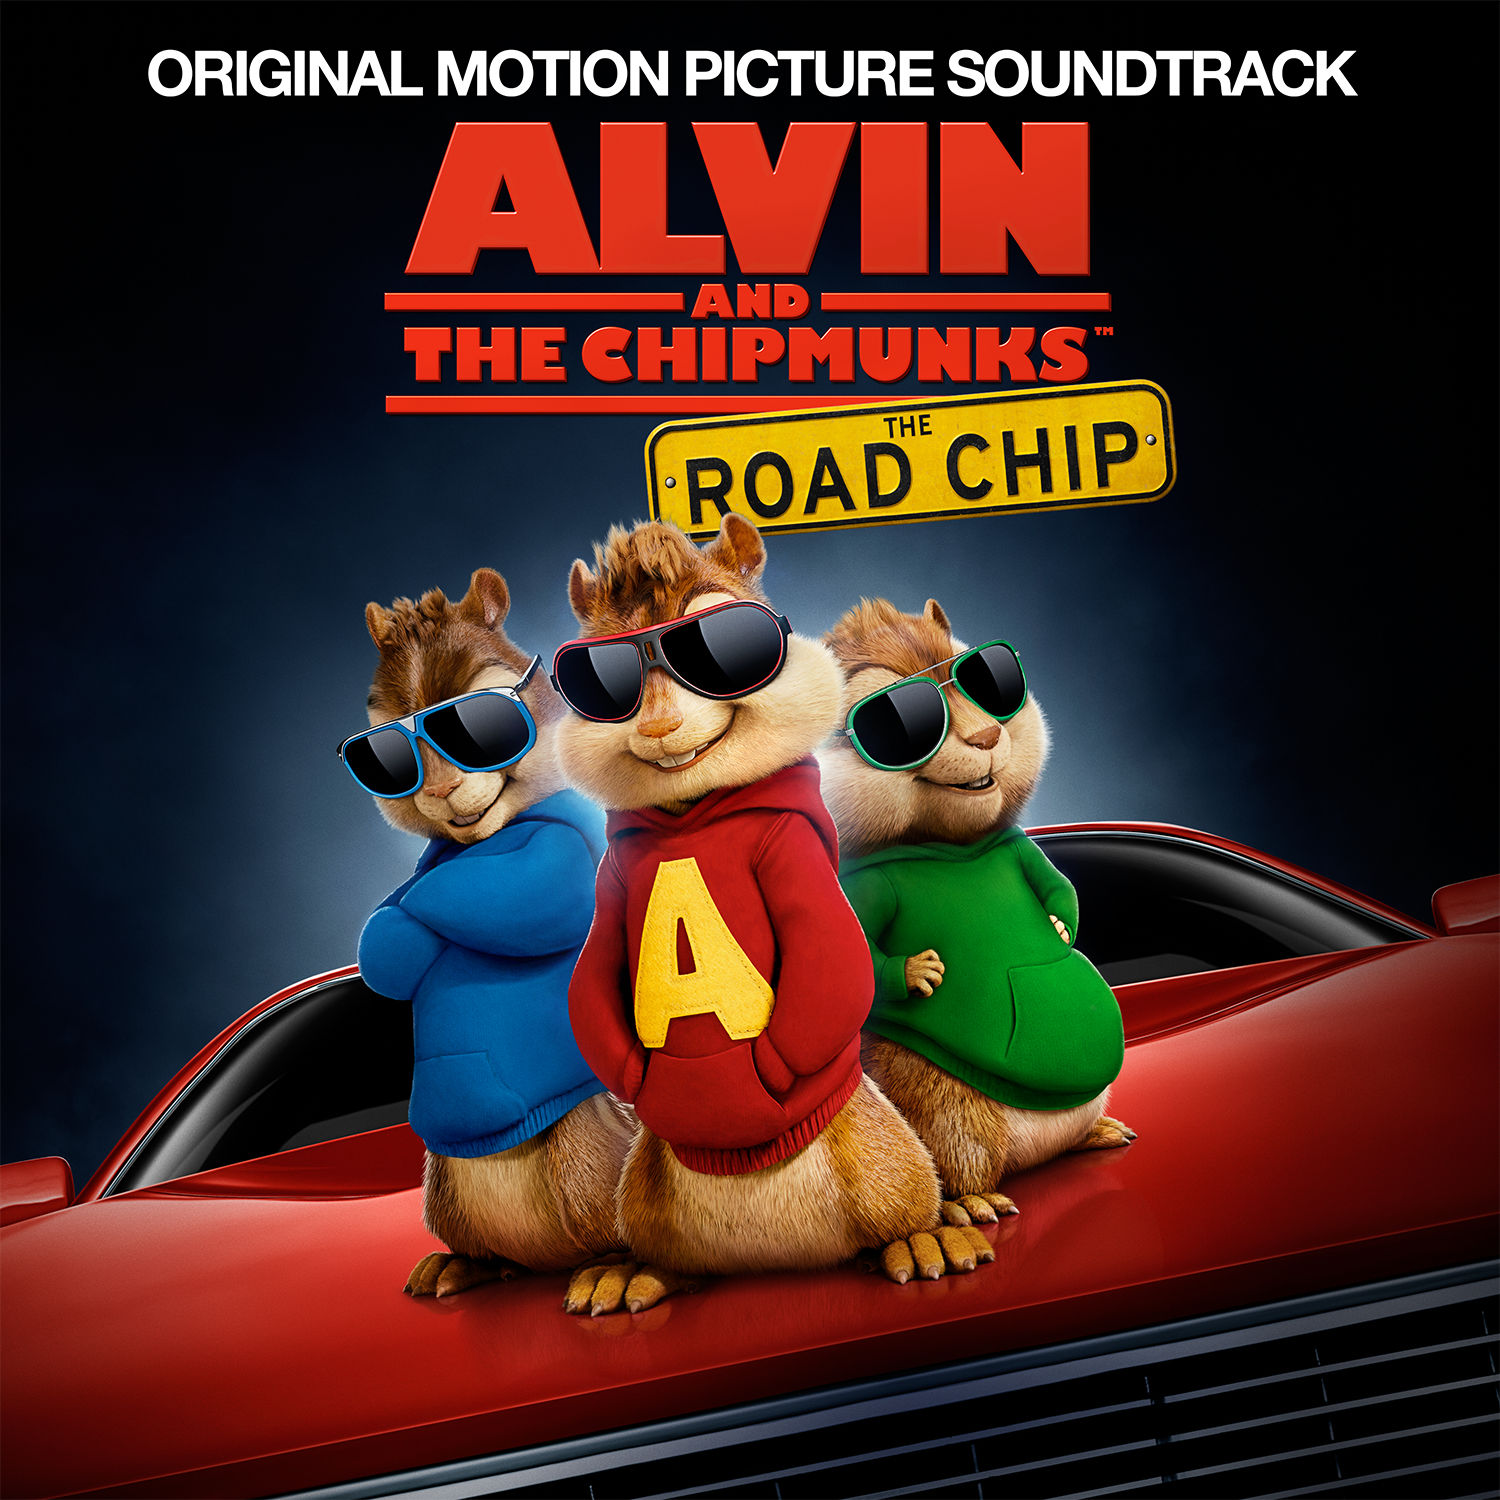 alvin and the chipmunks road chip